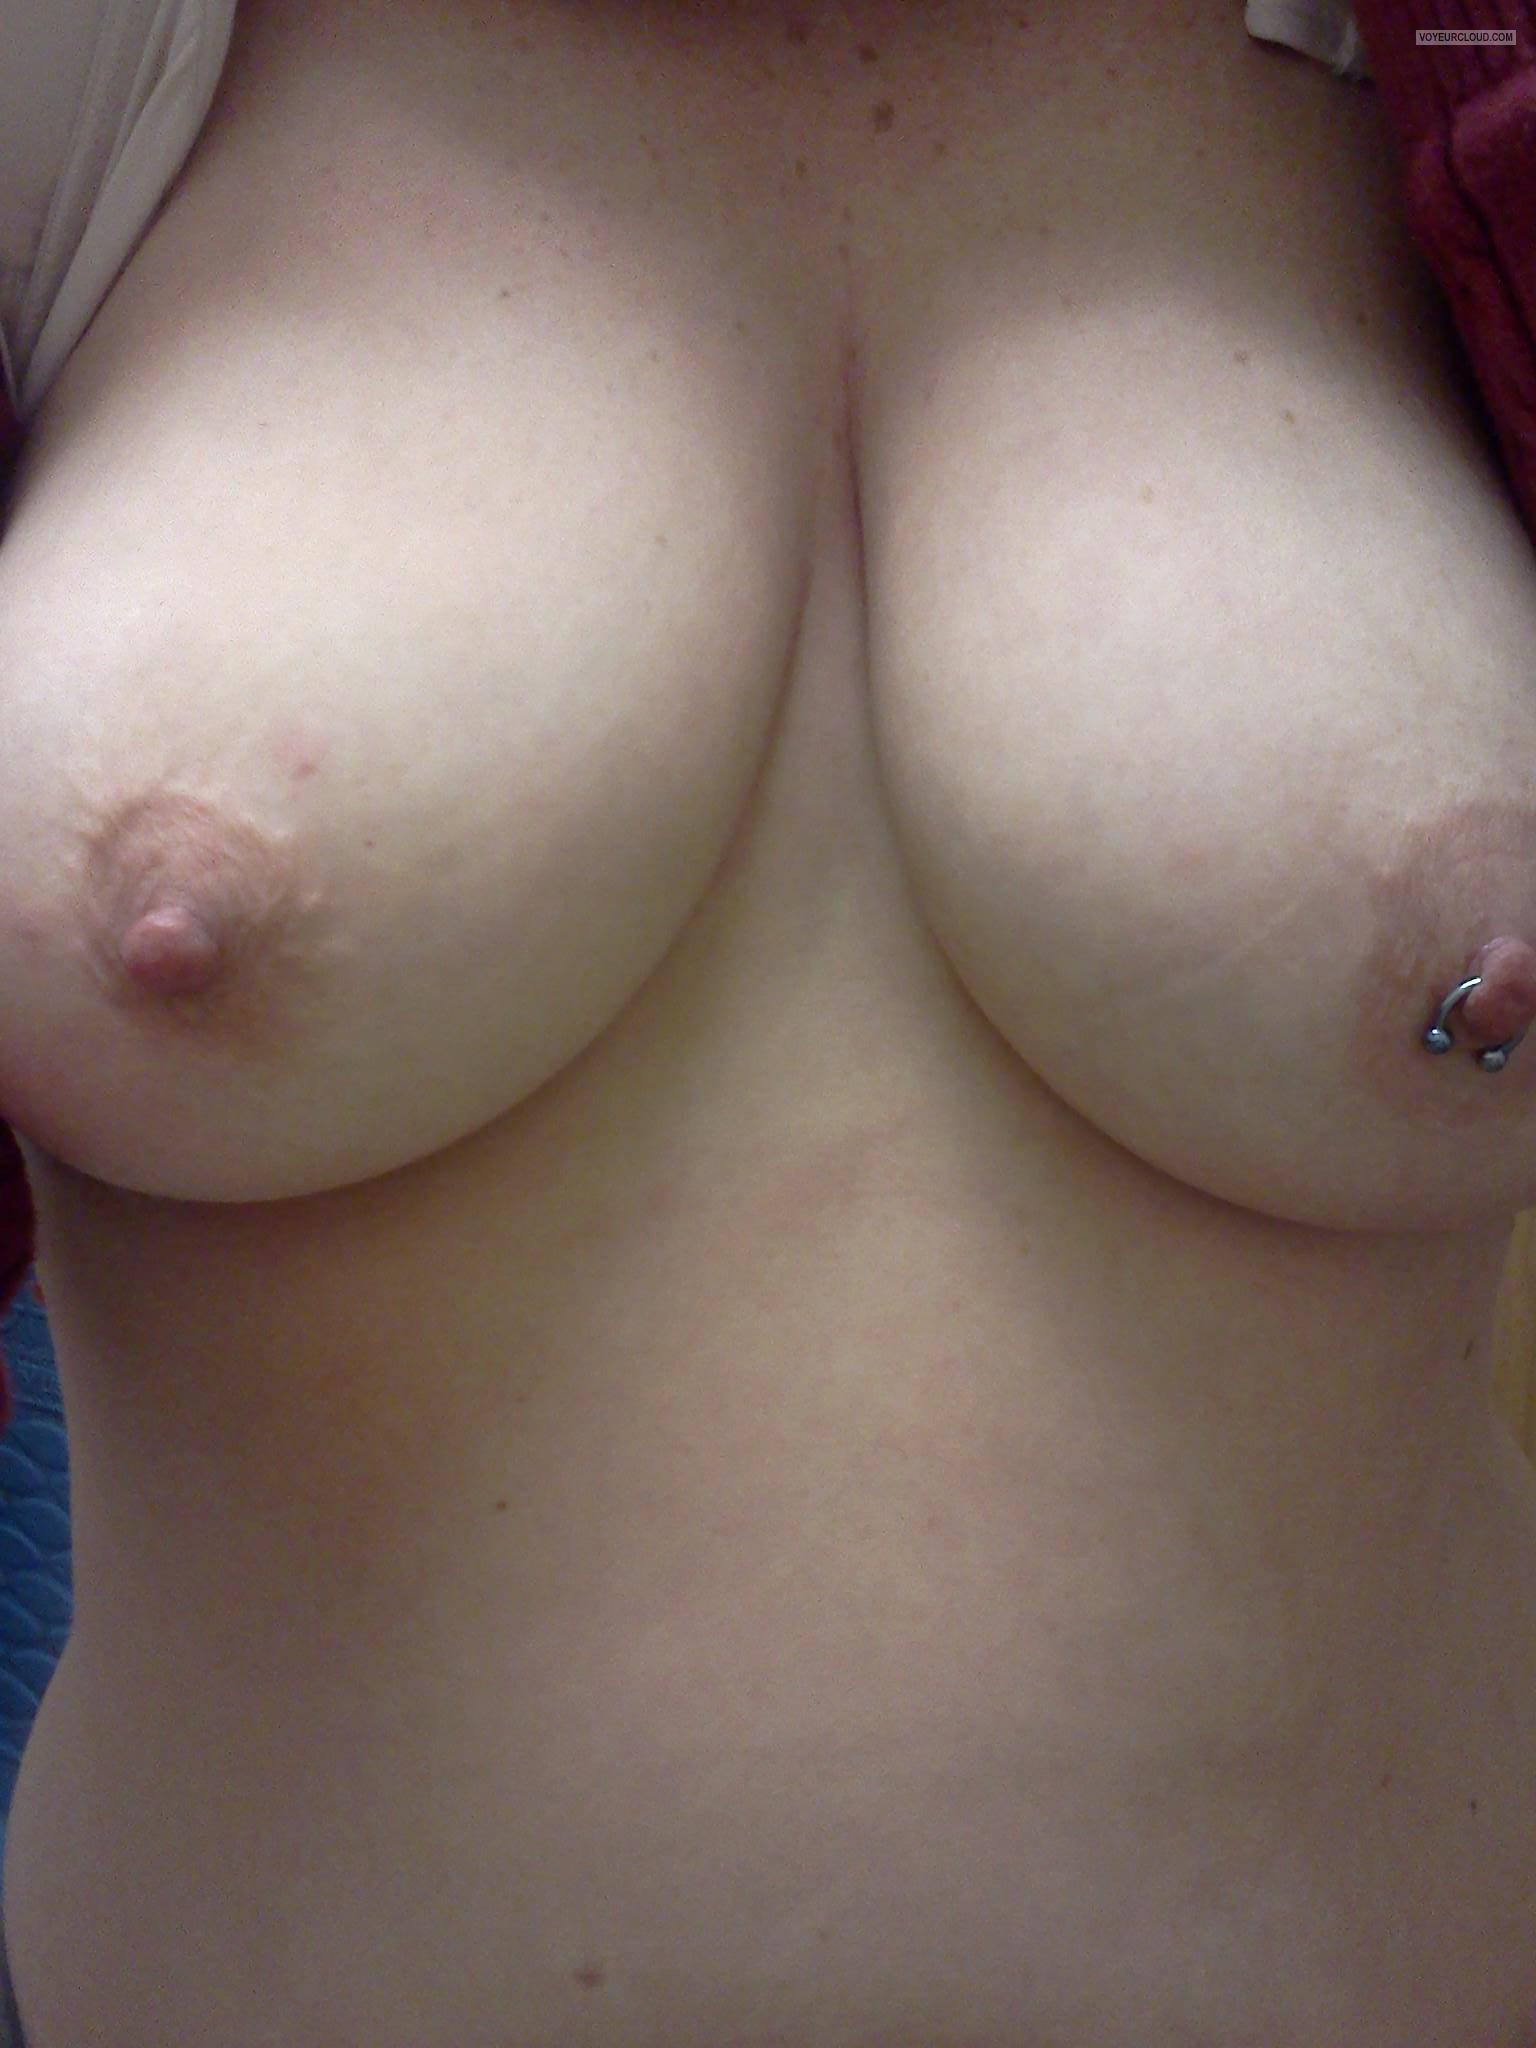 Medium Tits Of My Wife Selfie by Huntsman